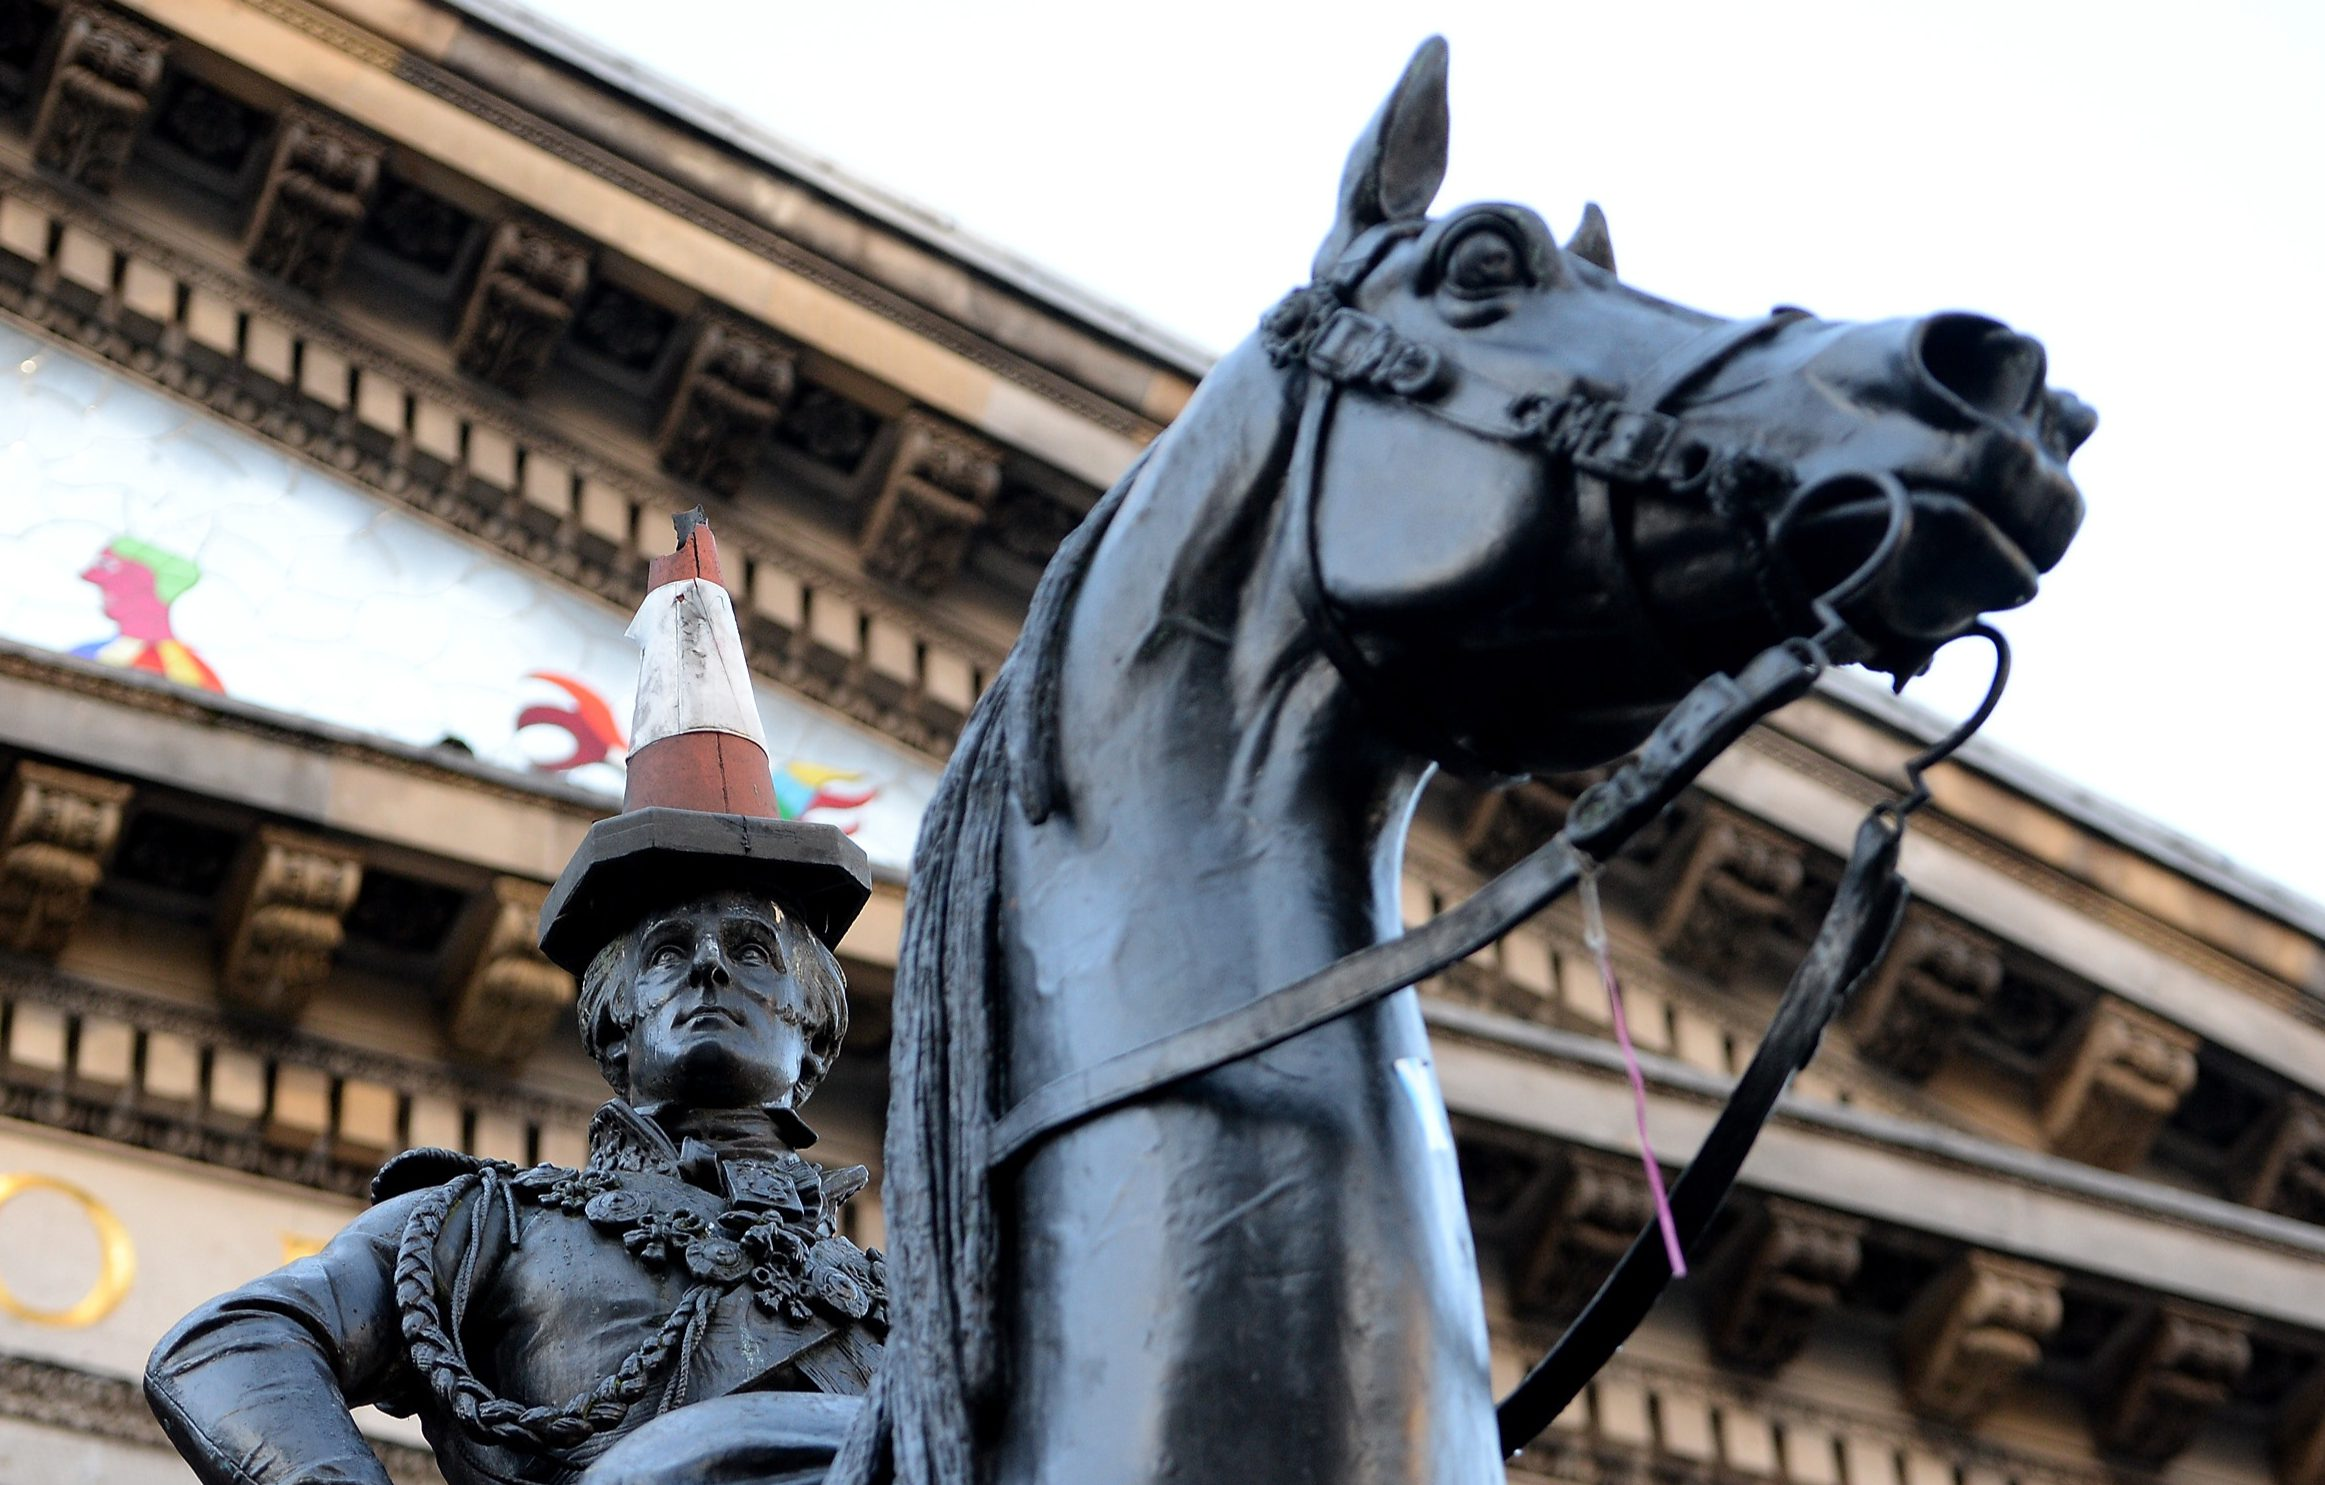 The Duke of Wellington Statue is pictured on November 18, 2013 in Glasgow, Scotland. Plans by Glasgow City Council to raise the plinth in an attempt to end the tradition of a traffic cone being placed on the statue have been abandoned due to a successful public campaign. More than 10,000 people had signed an online petition claiming that the cone on the head of the monument had become part of Glasgow's landscape. GLASGOW, SCOTLAND - NOVEMBER 18: (Photo by Jeff J Mitchell/Getty Images)